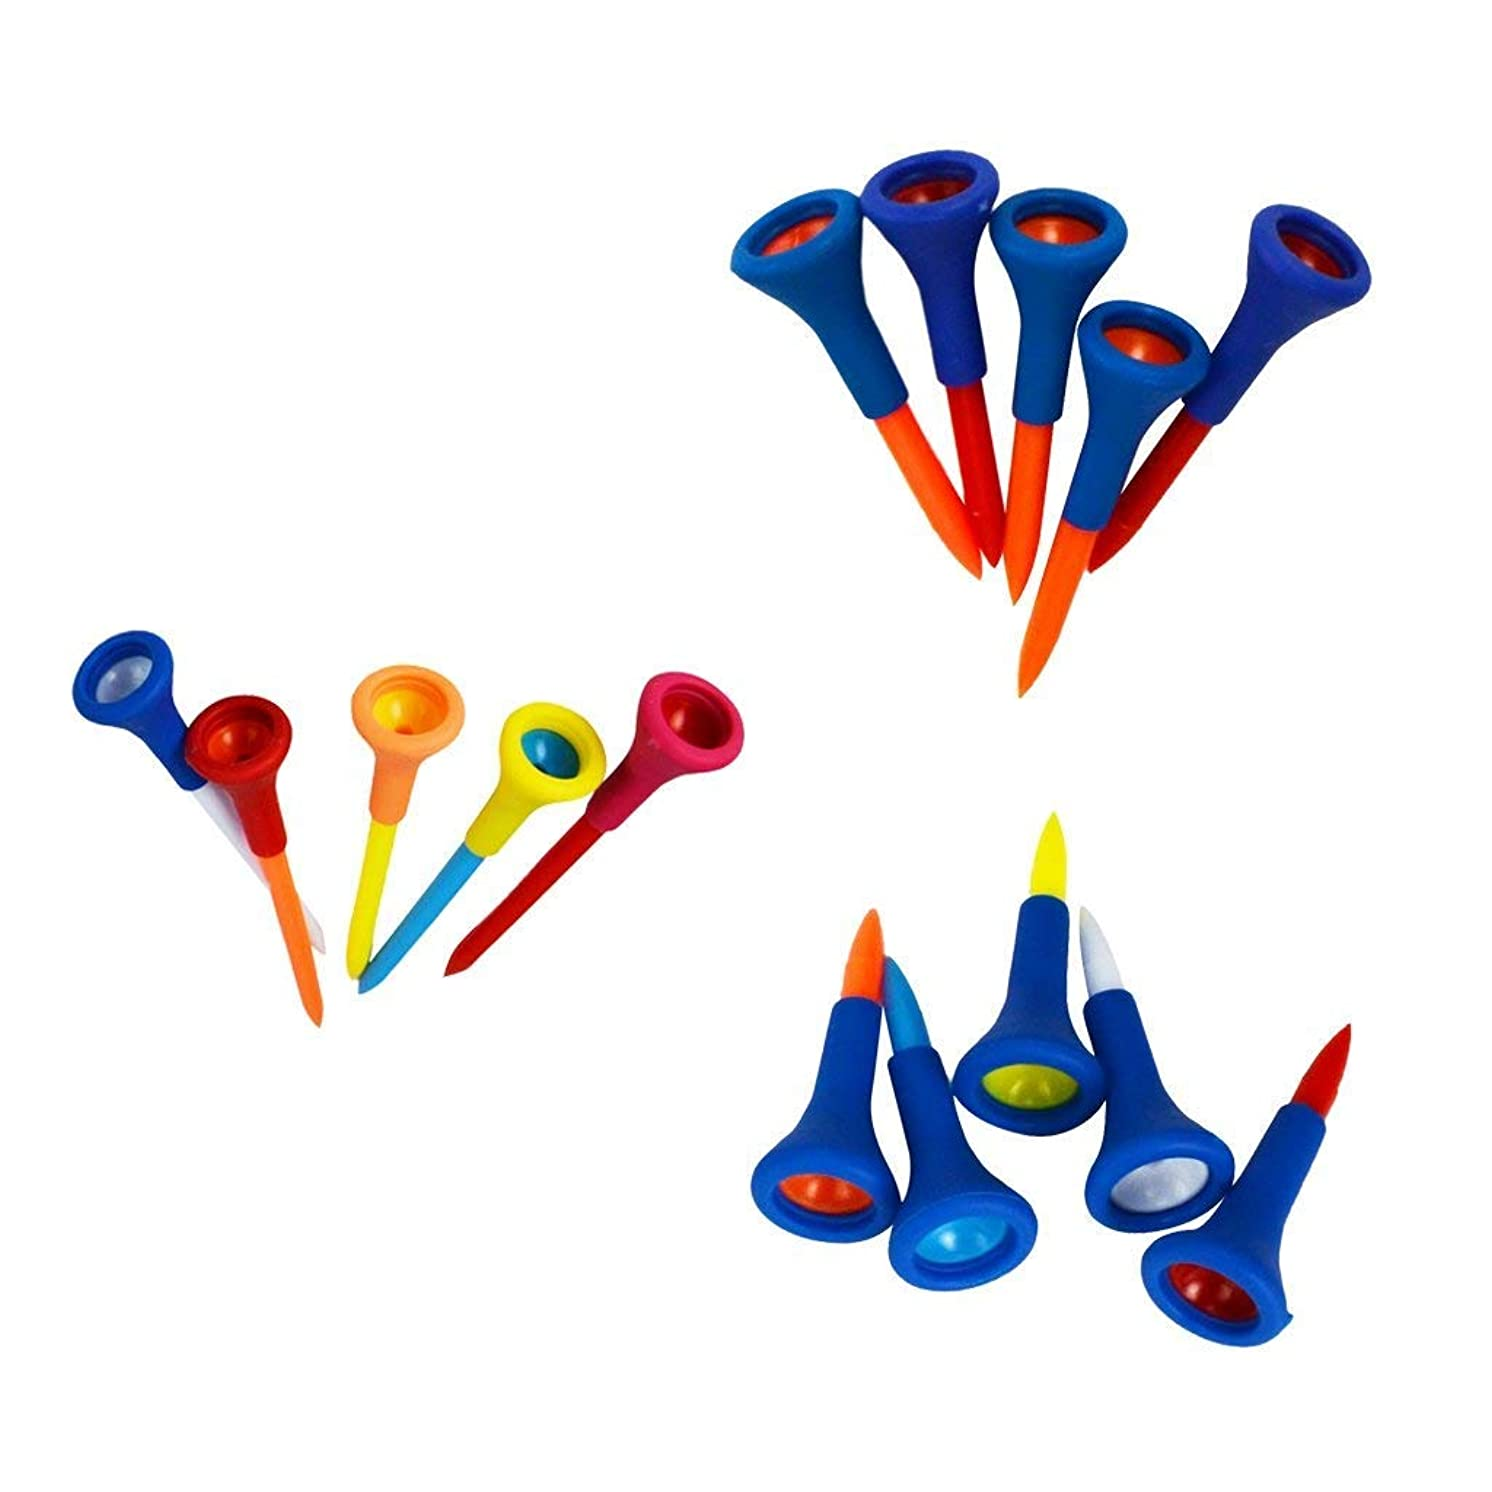 10Pcs Golf Tees Rubber Cushion 1.7 inches Golf Accessory Tool For Golf Sports Sent in Random Color